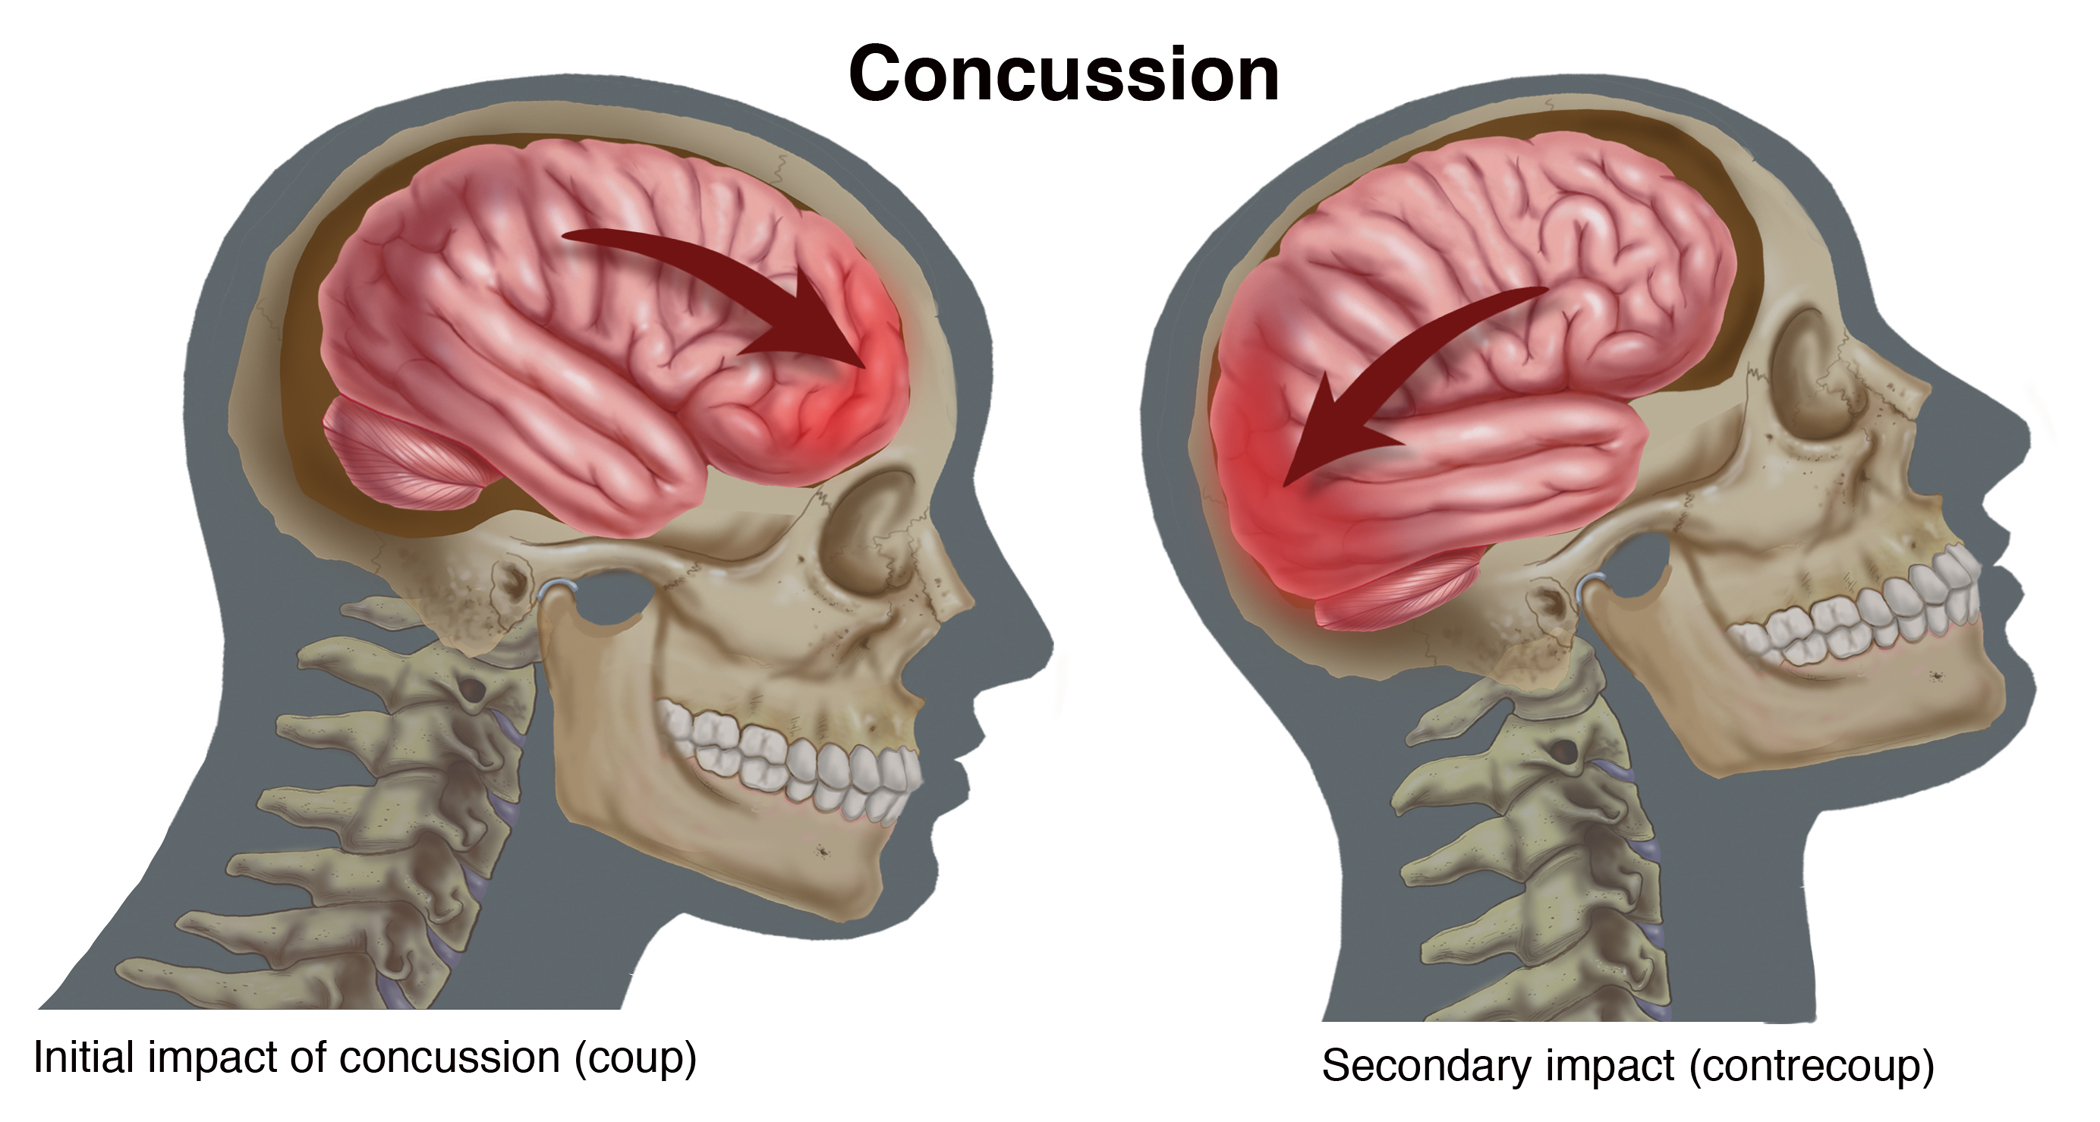 Concussion | Compel Visuals